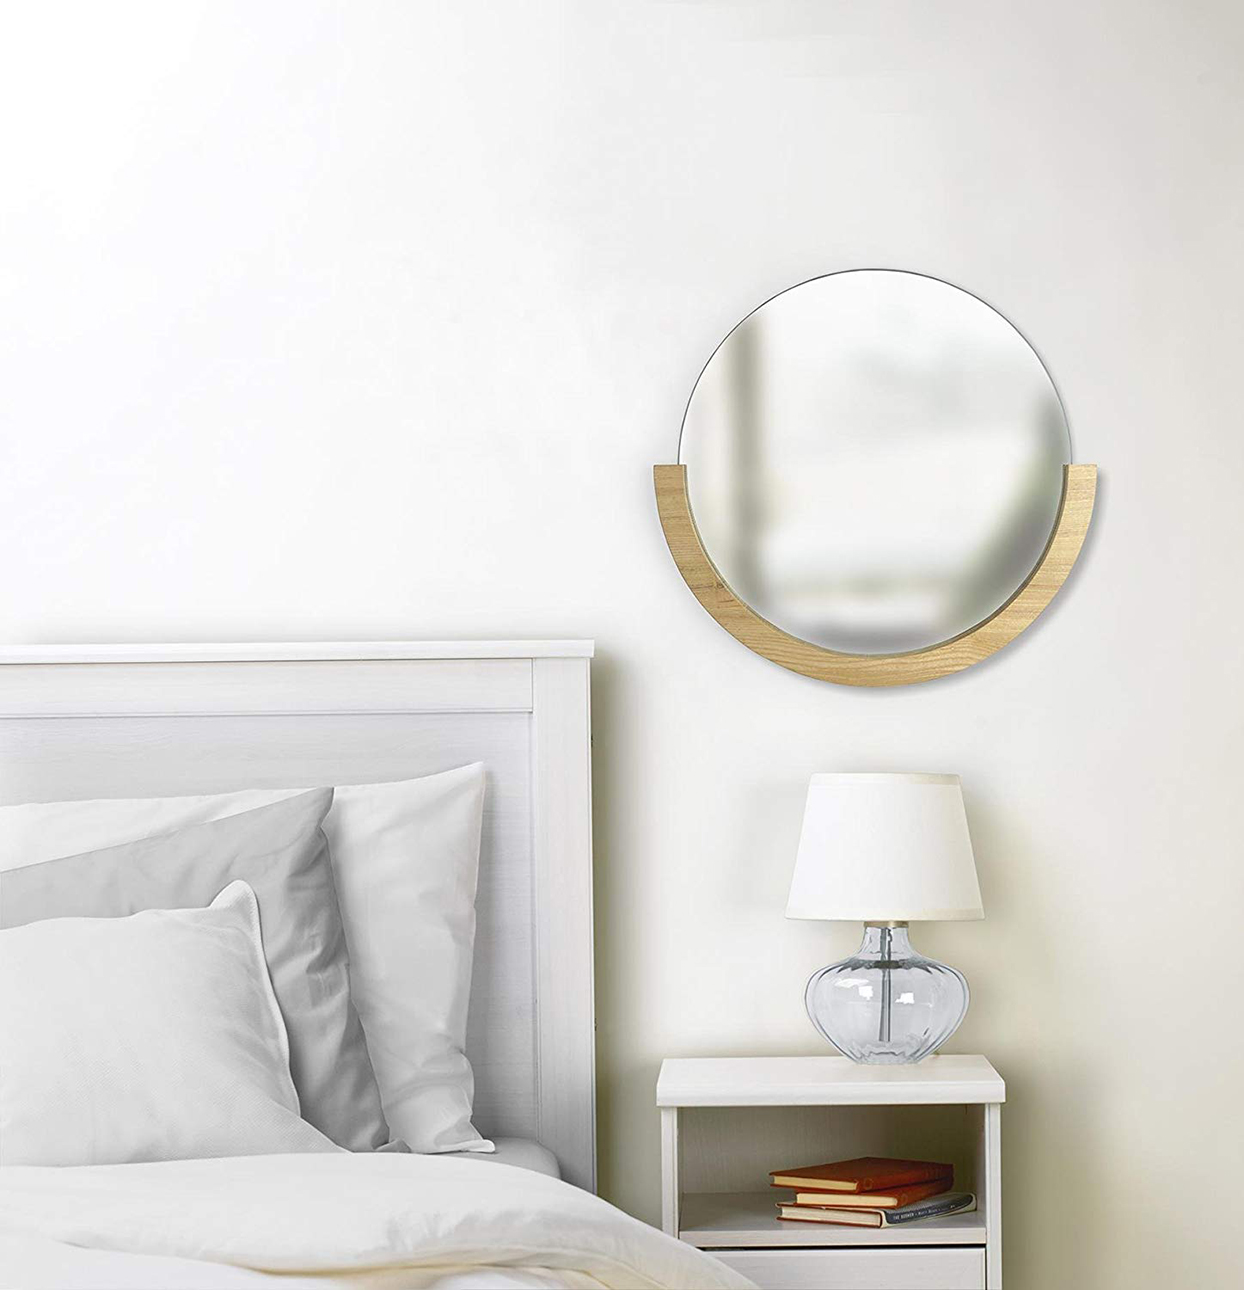 round wood mirror above nightstand next to bed